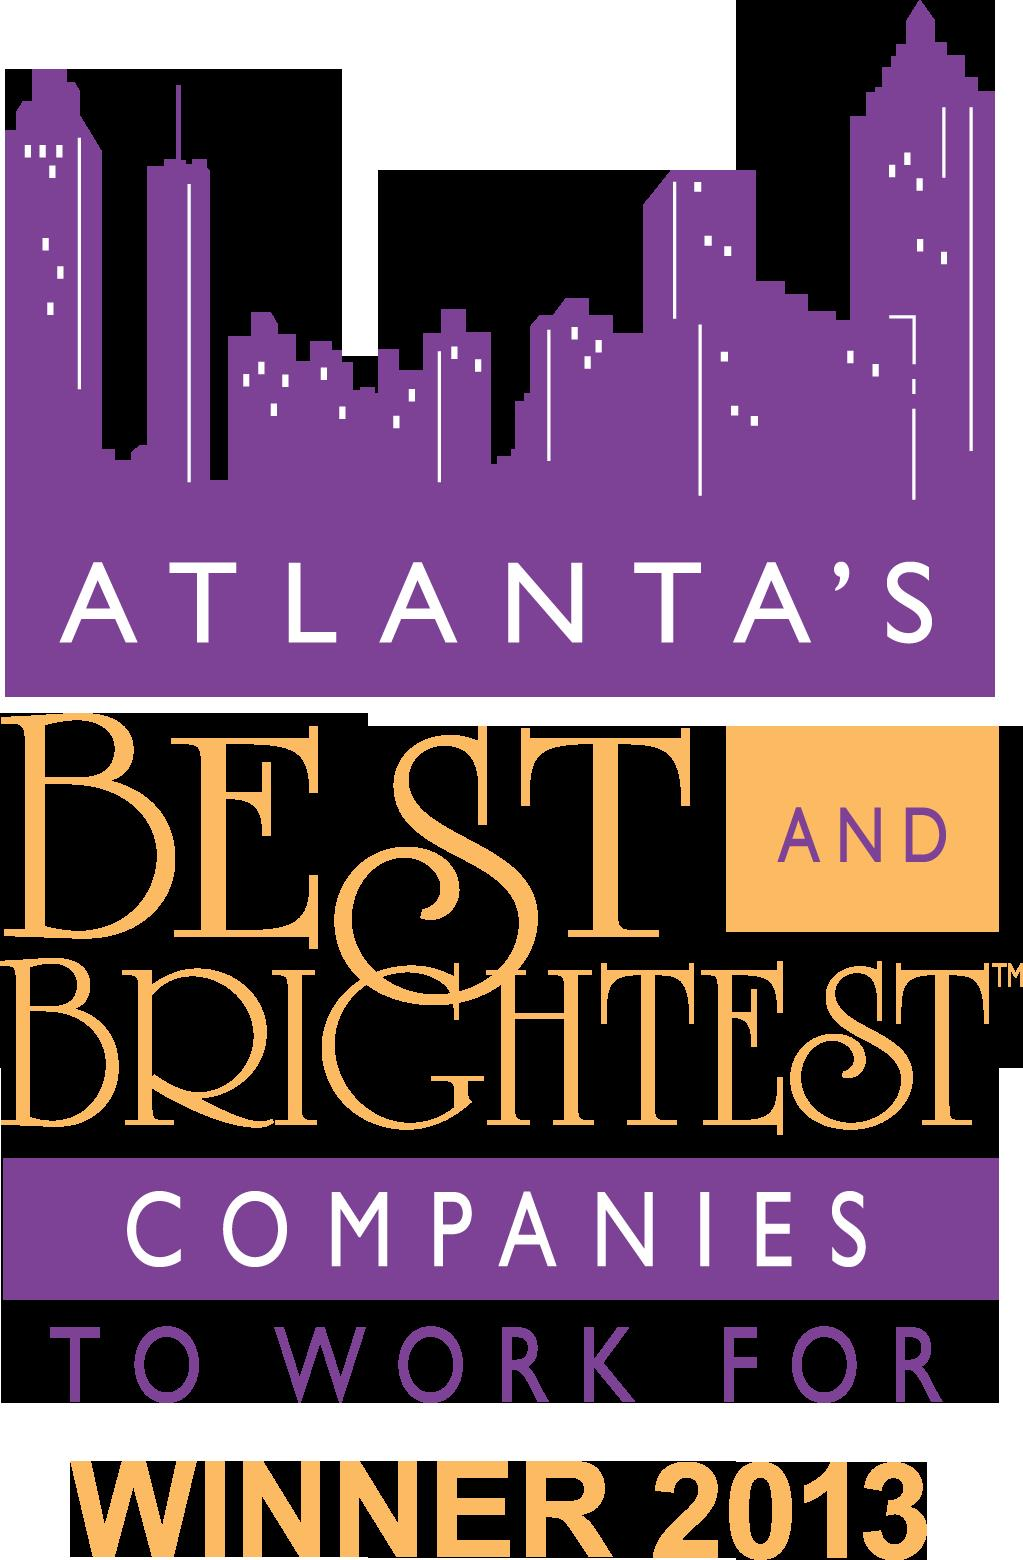 Aerotek Named to Atlanta's Best and Brightest Companies to Work For List